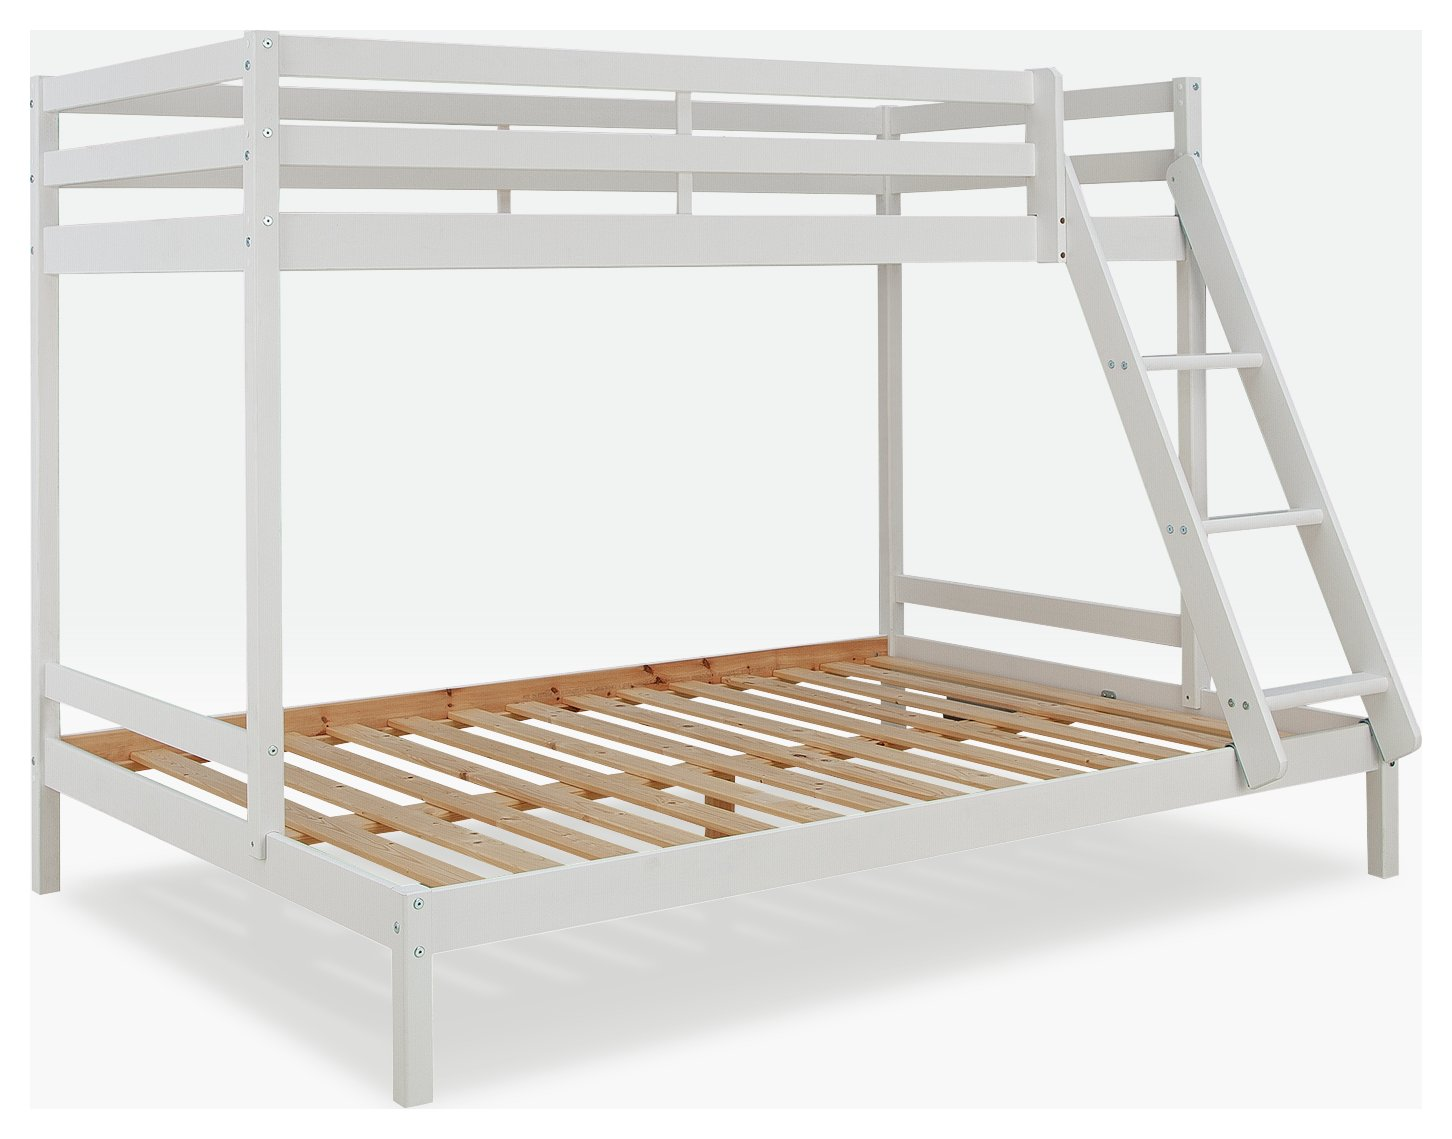 Argos Home Kaycie Single and Double Bunk Bed Frame - White